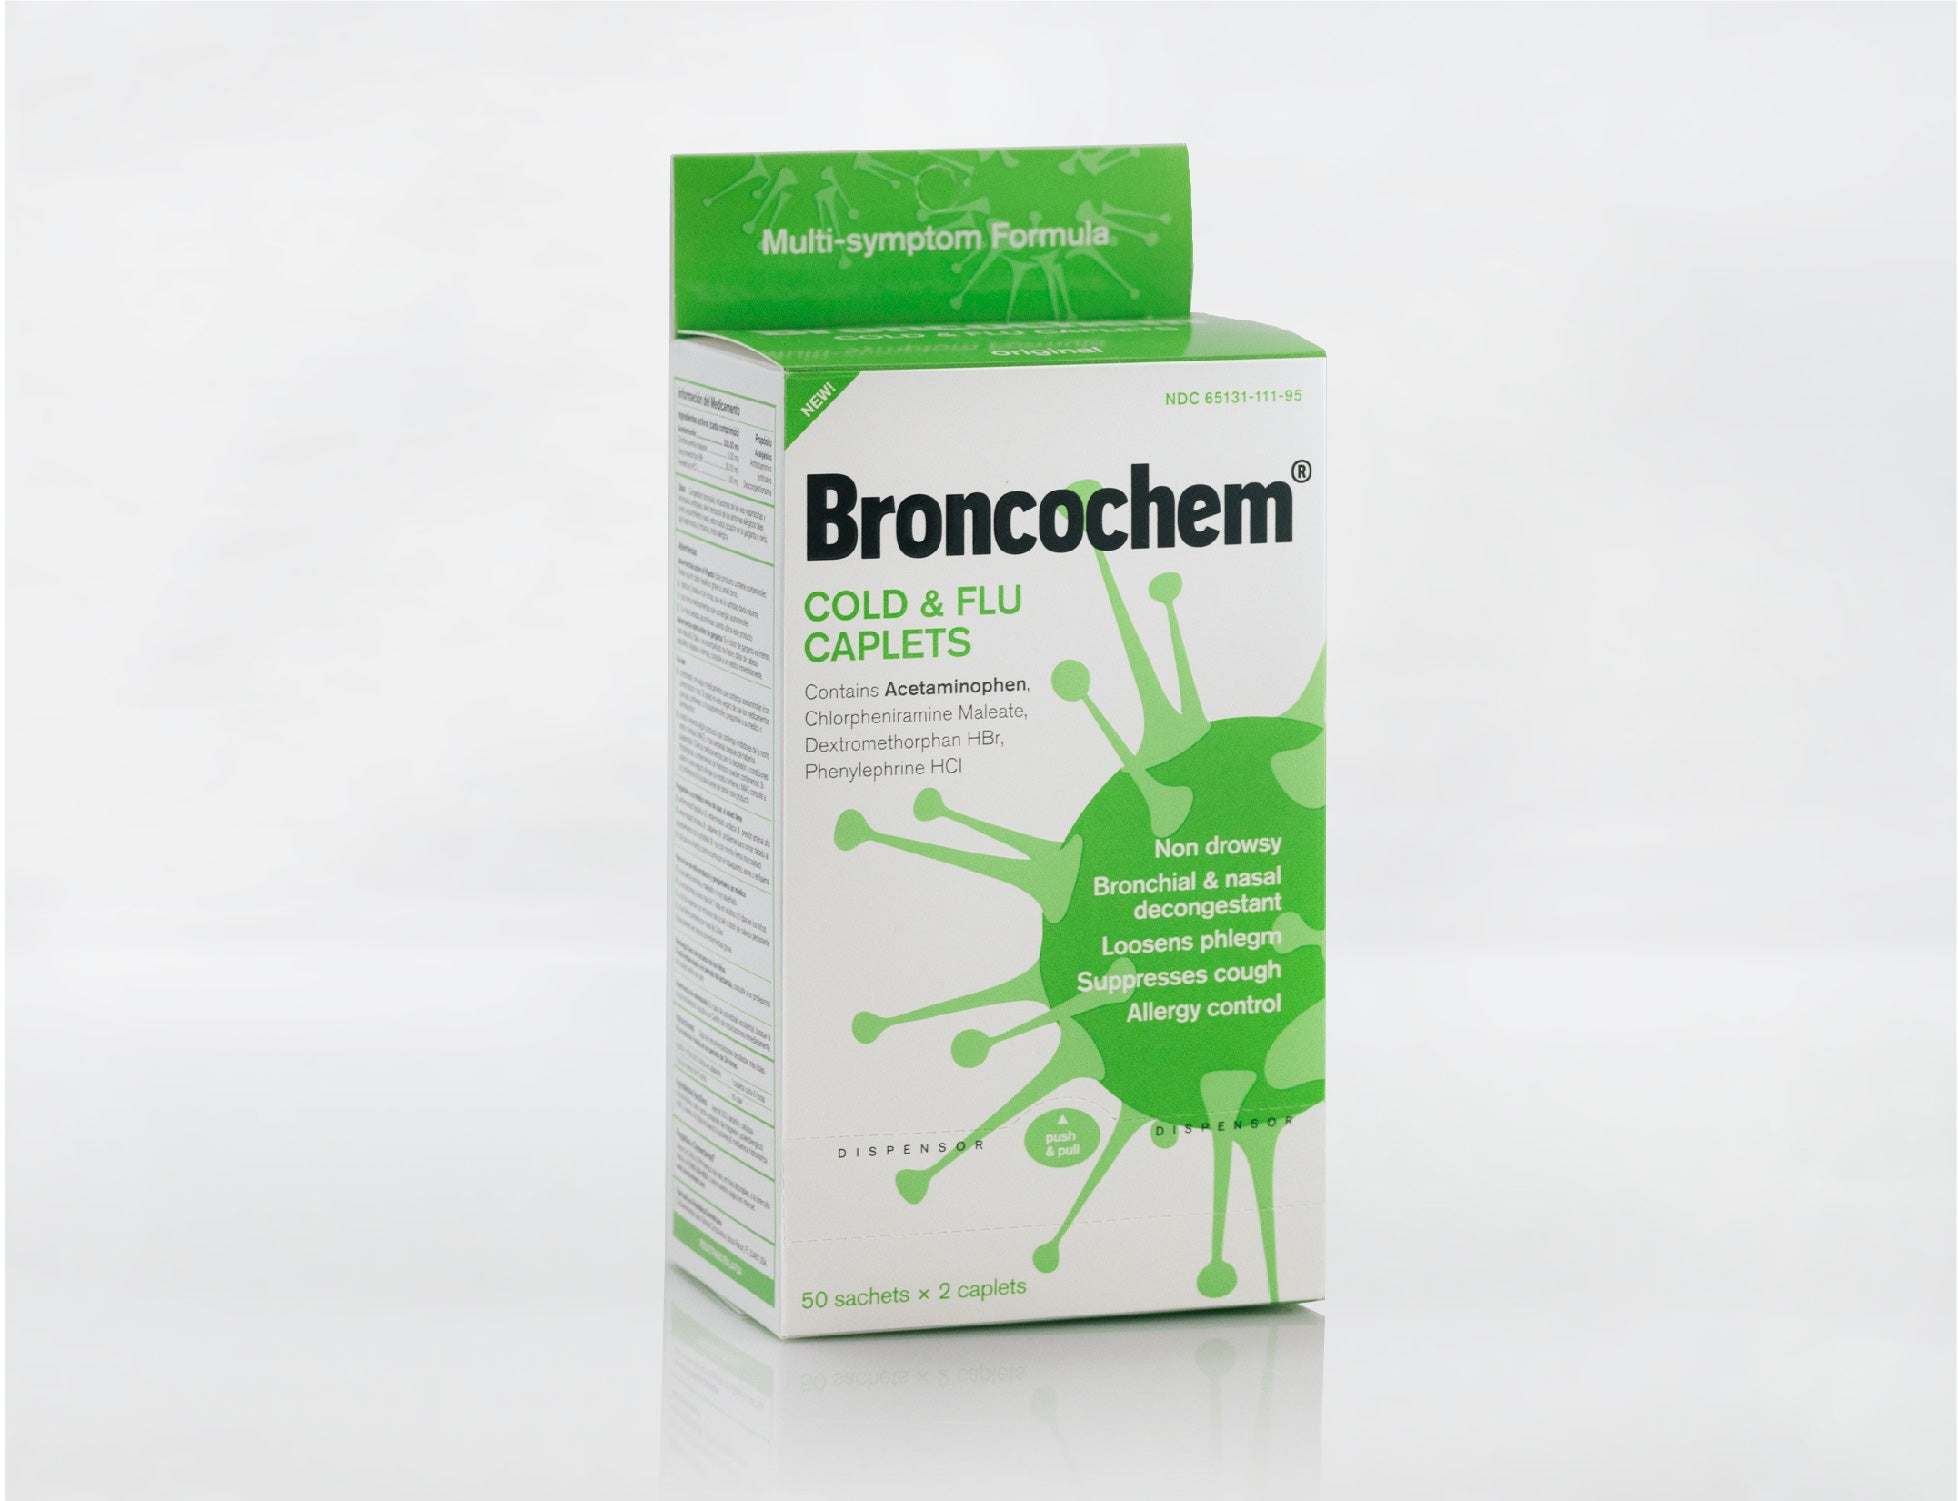 Broncochem Cold & Flu Caplet (50 packs x 2 caplets)